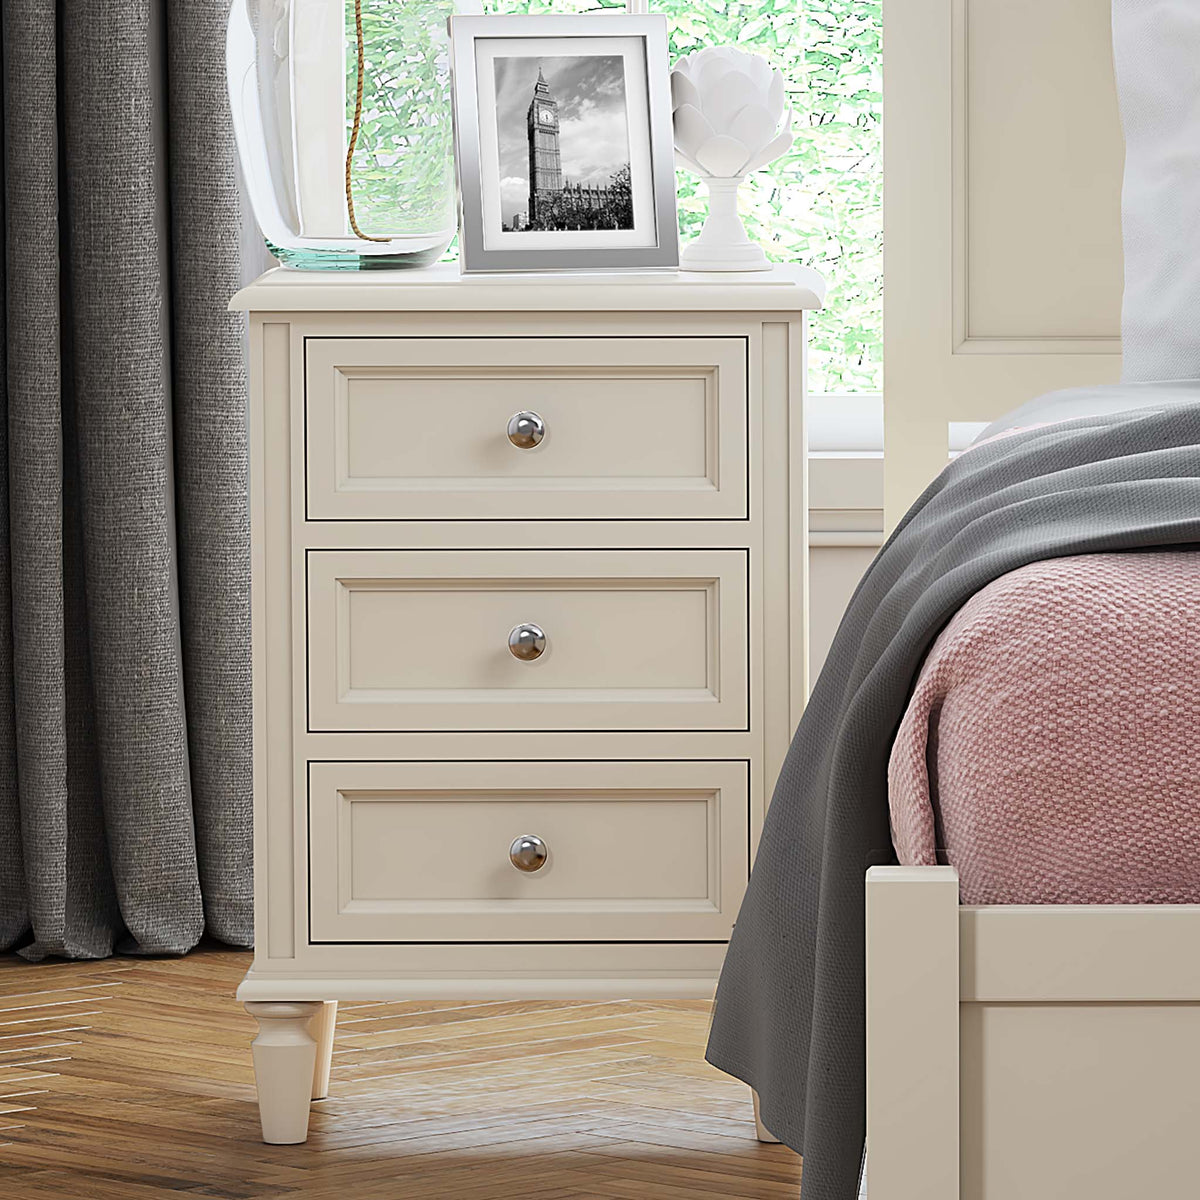 The Mulsanne Cream French Style Bedside Table with 3 Drawers - Close Up of Lifestyle